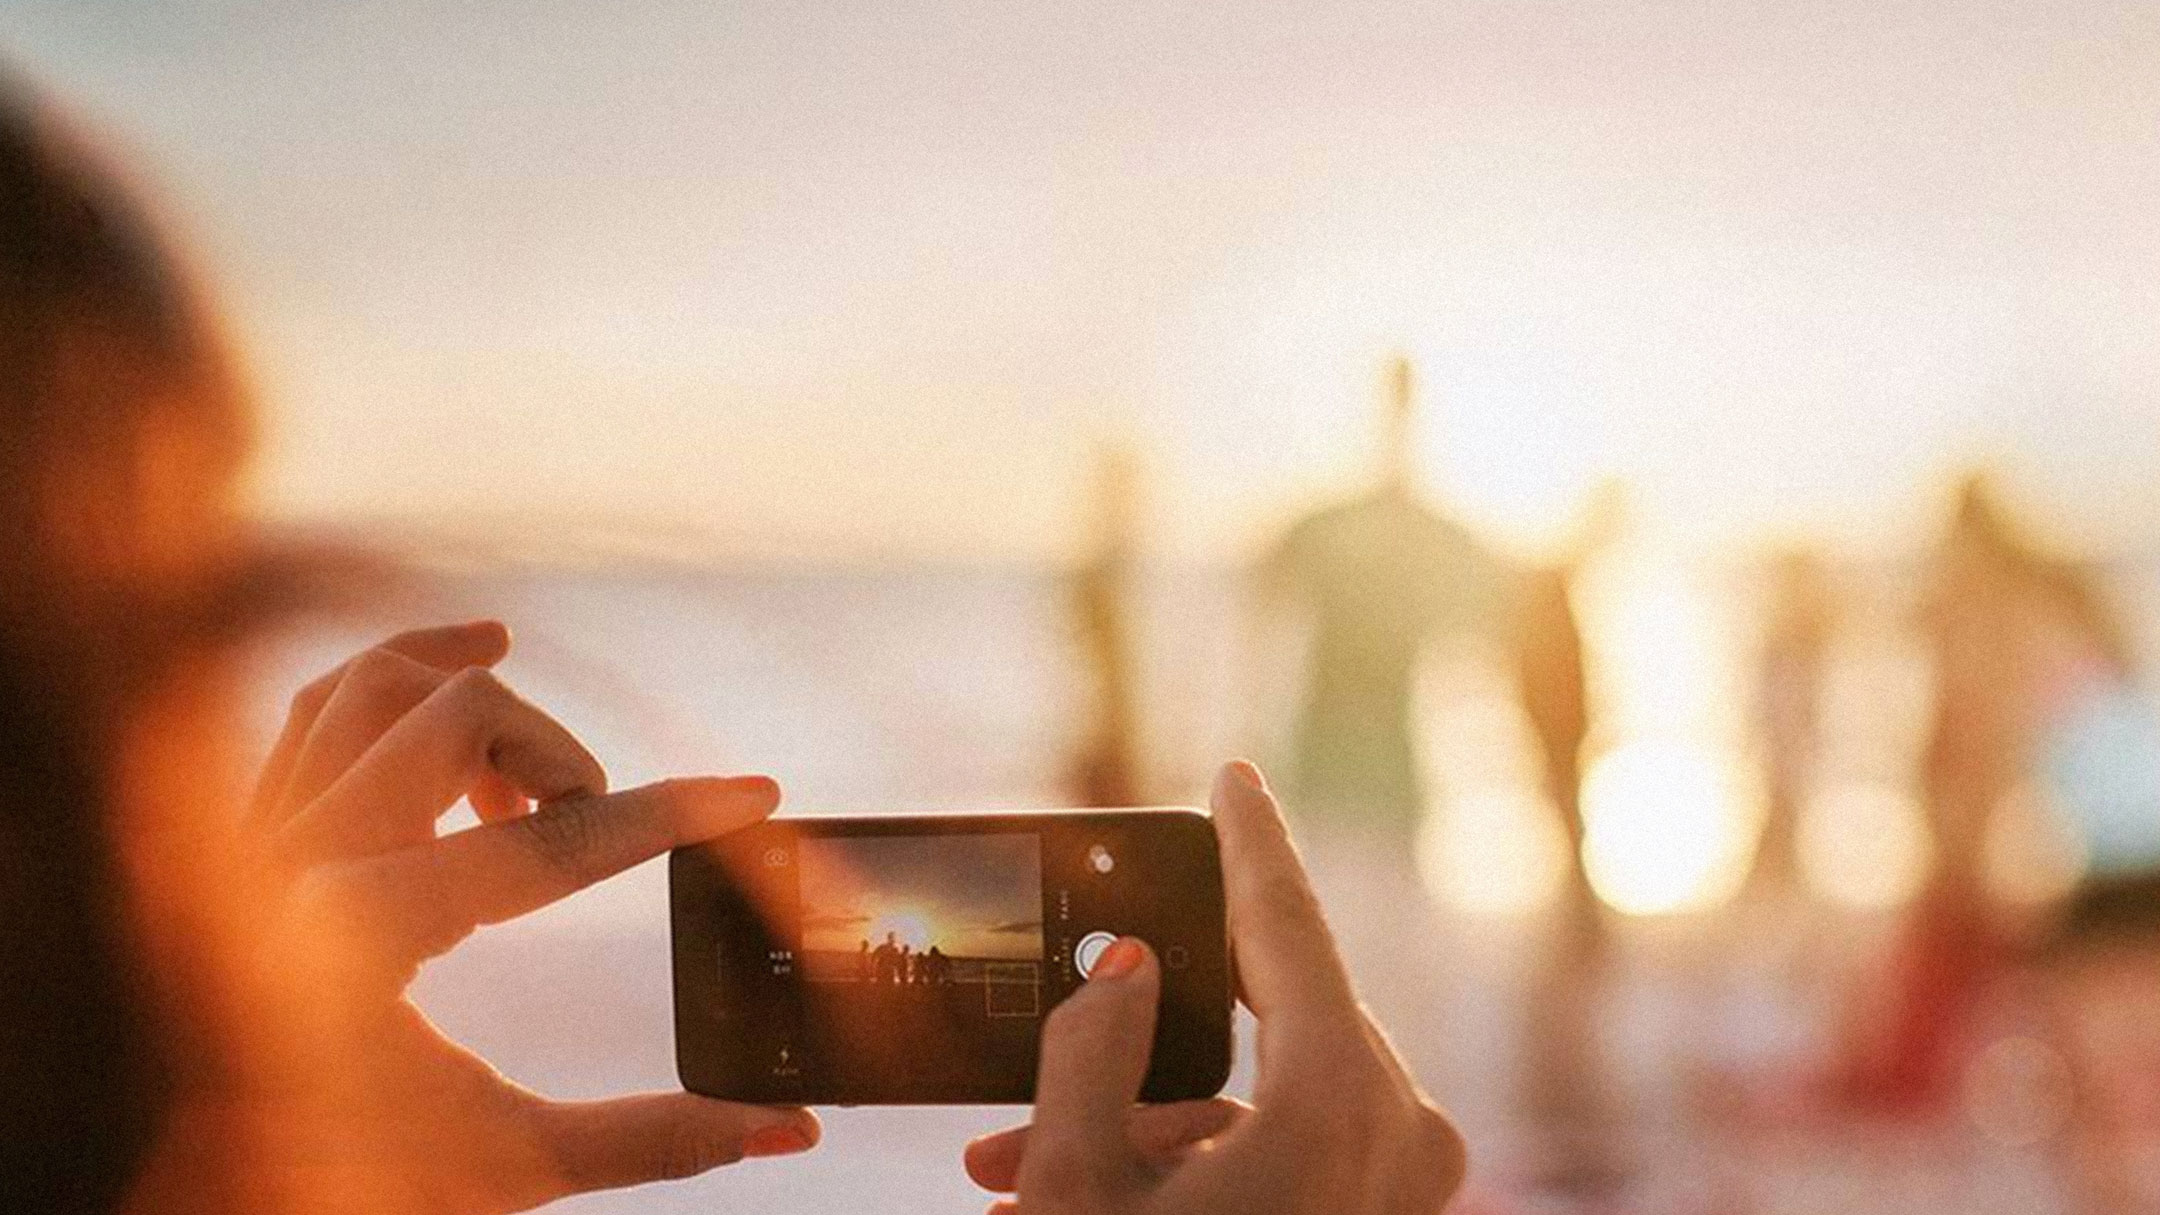 Someone taking a picture of friends on the beach with their iPhone.